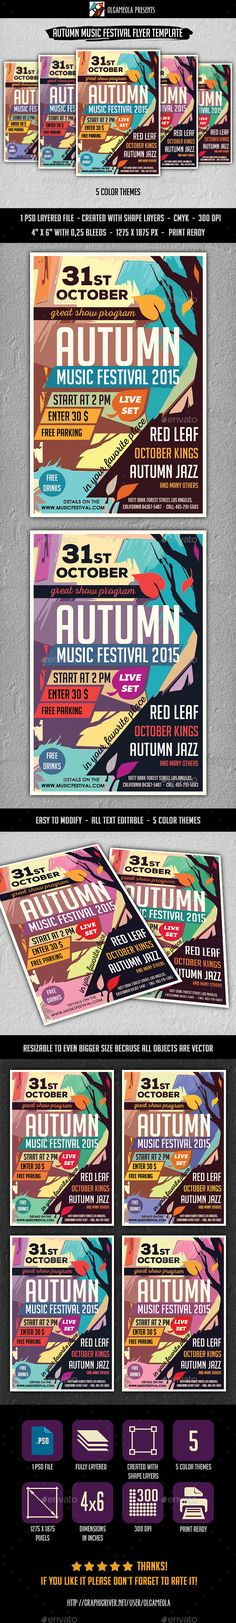 Autumn Music Festival Flyer Template PSD #design Download: http://graphicriver.net/item/autumn-music-festival-flyer-template/13089287?ref=ksioks